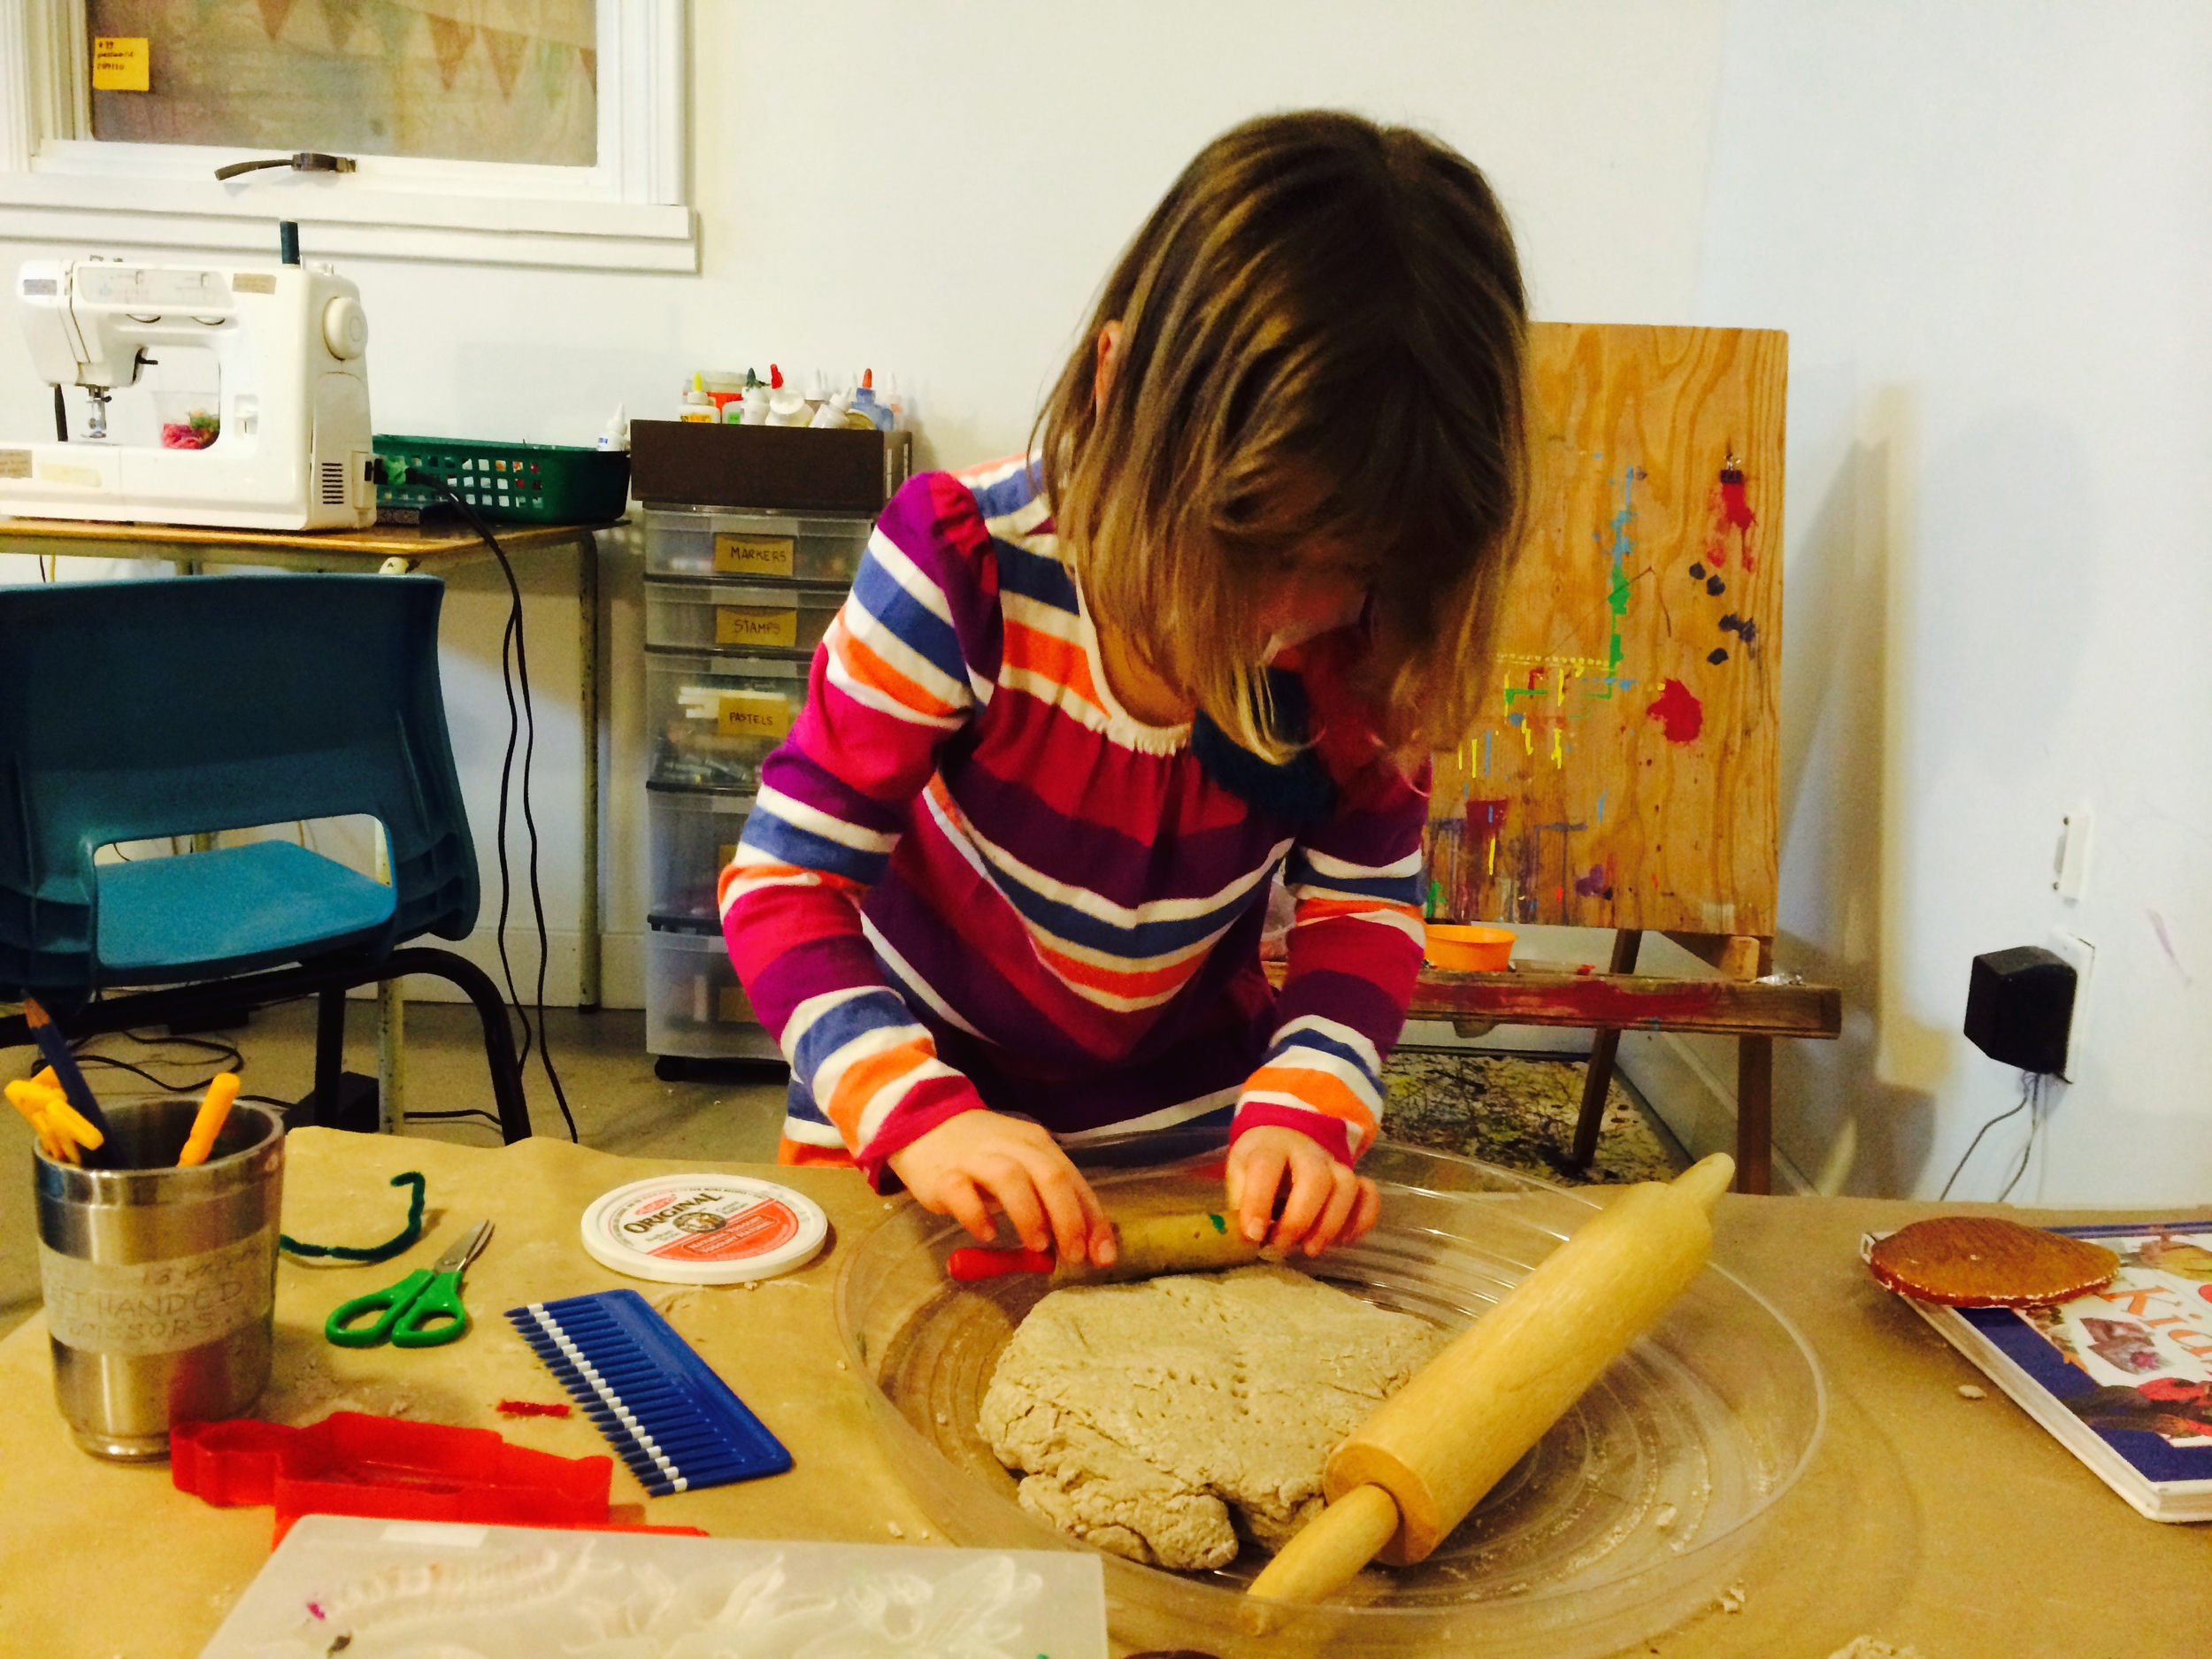 Homemade sanddough for play and casting.